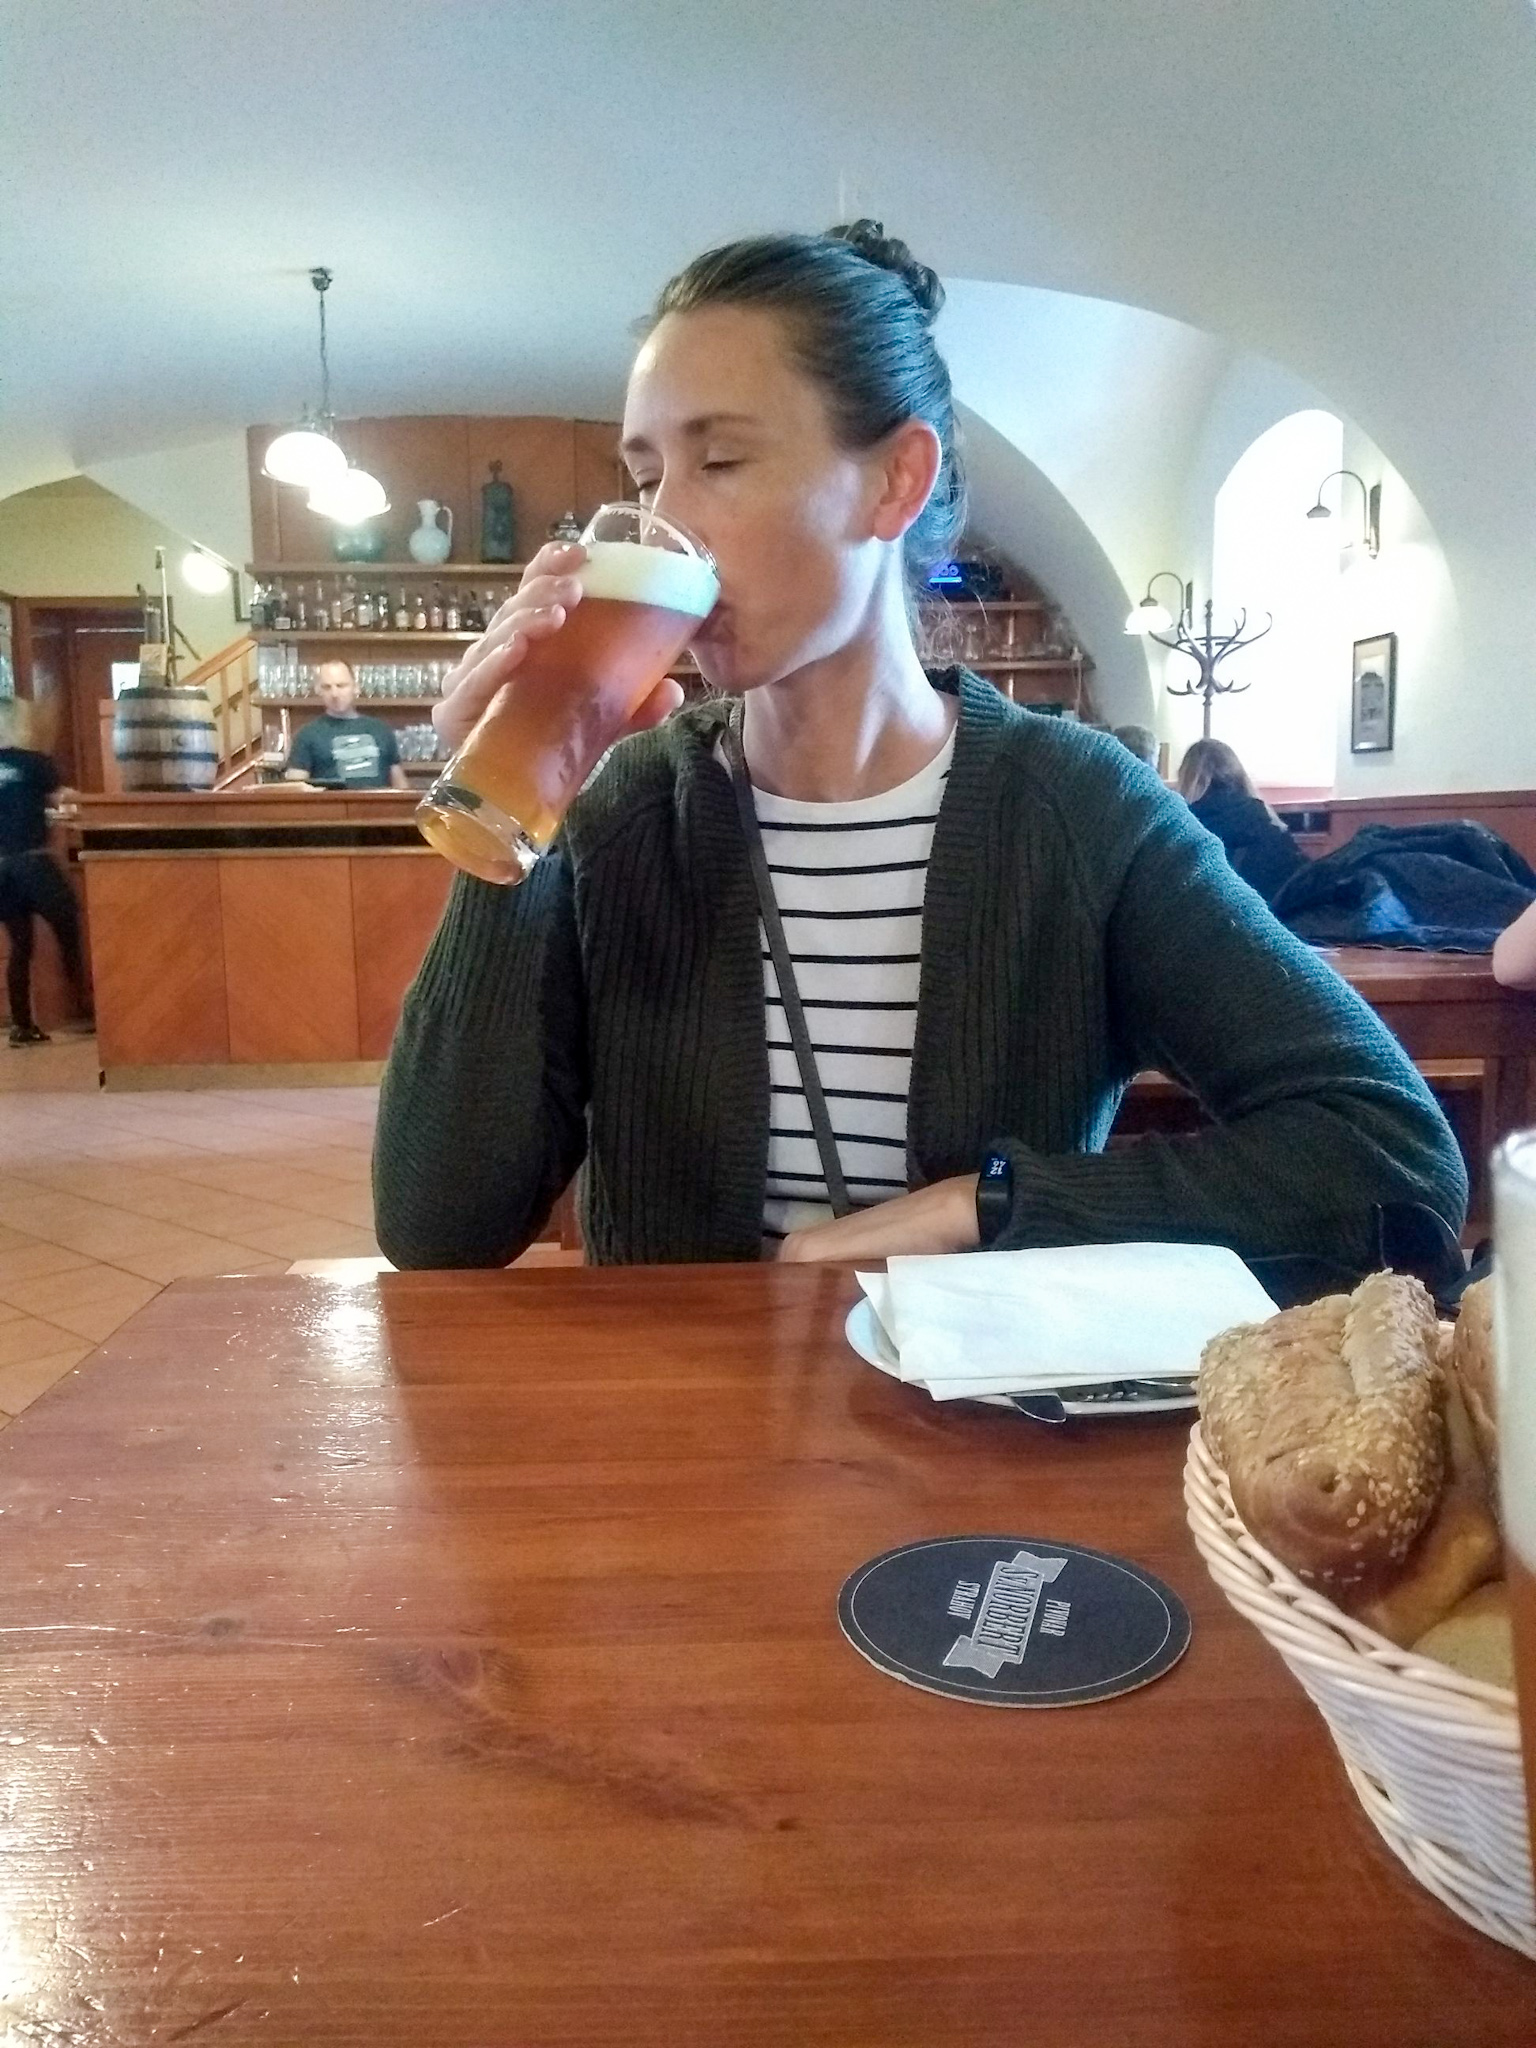 This sums up the majority of the trip. Remember: the pilsner was invented in the Czech Republic